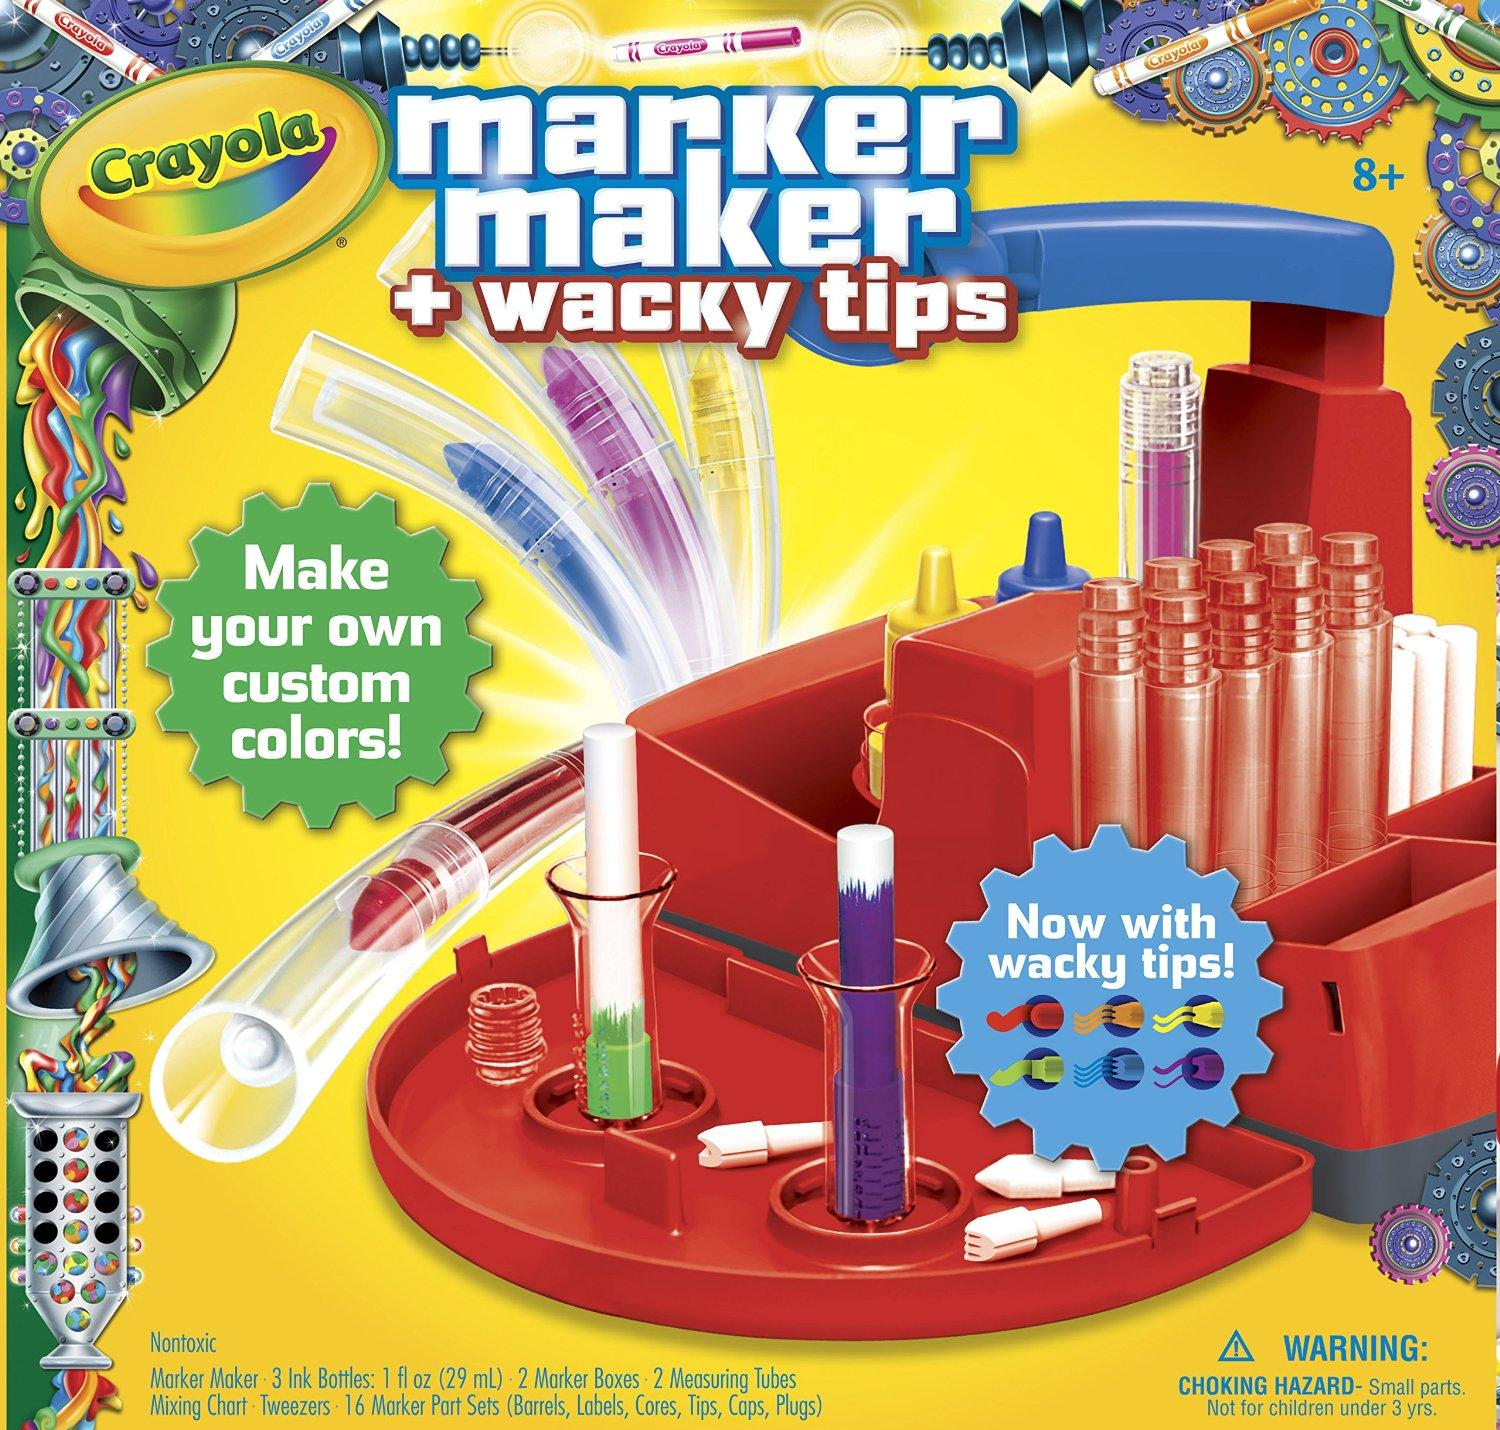 #1 Best Seller! Crayola Marker Maker Wacky Tips